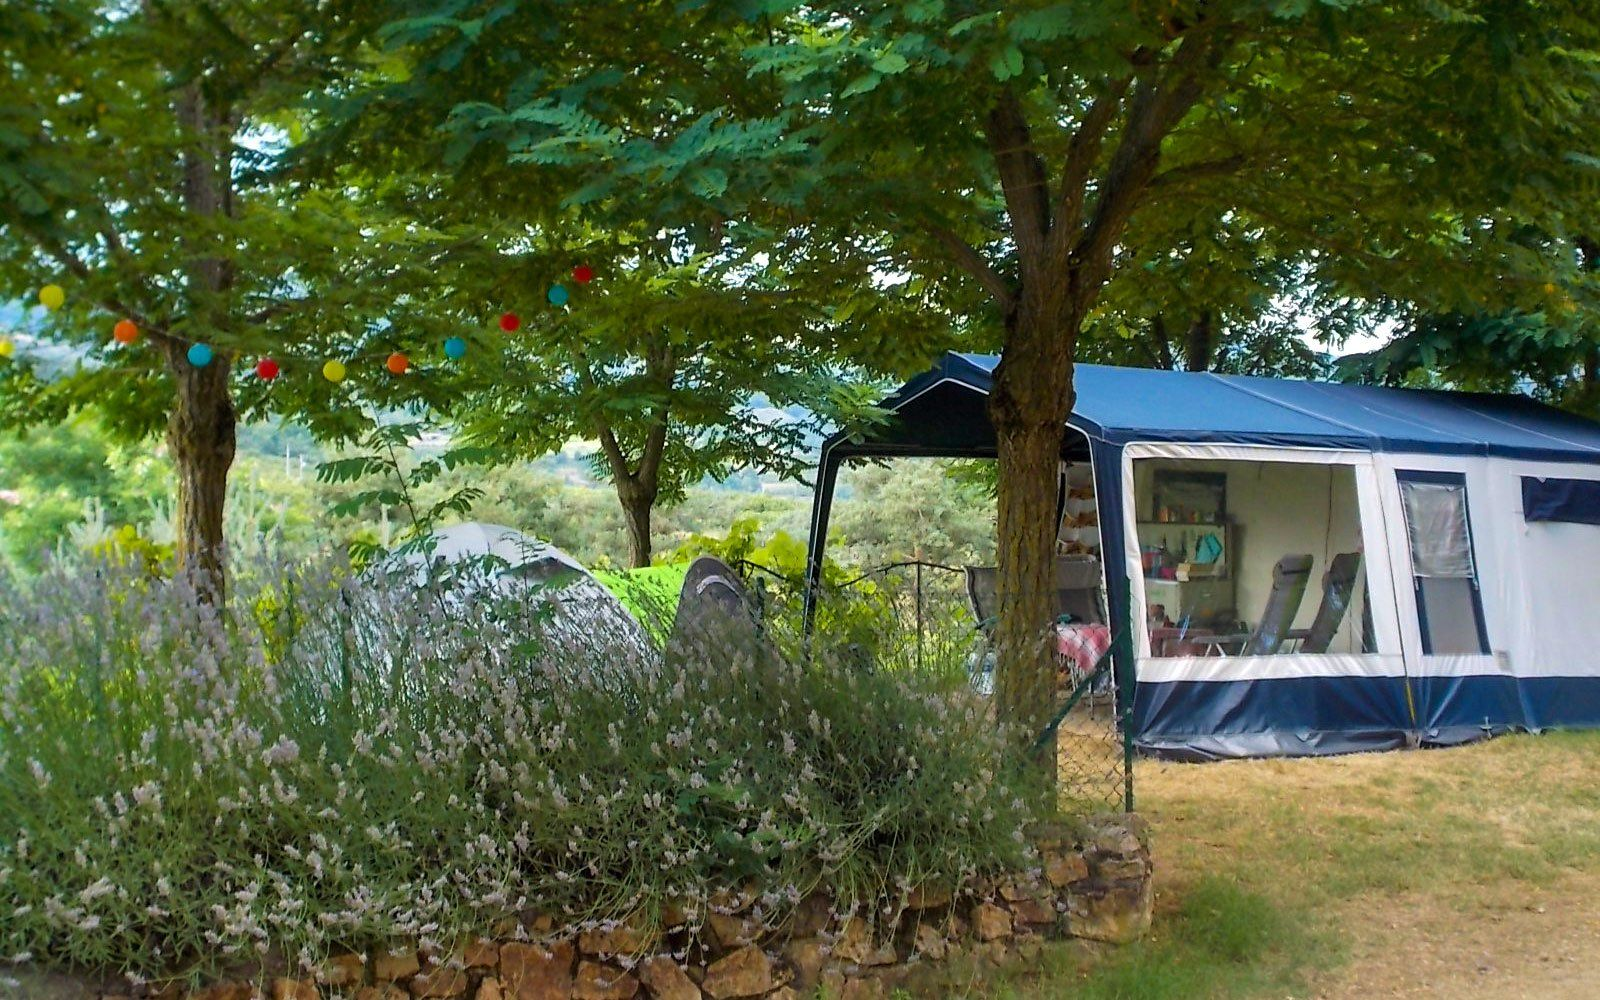 Domaine camping les r ches 4 toiles site officiel for Camping embrun avec piscine 4 etoiles